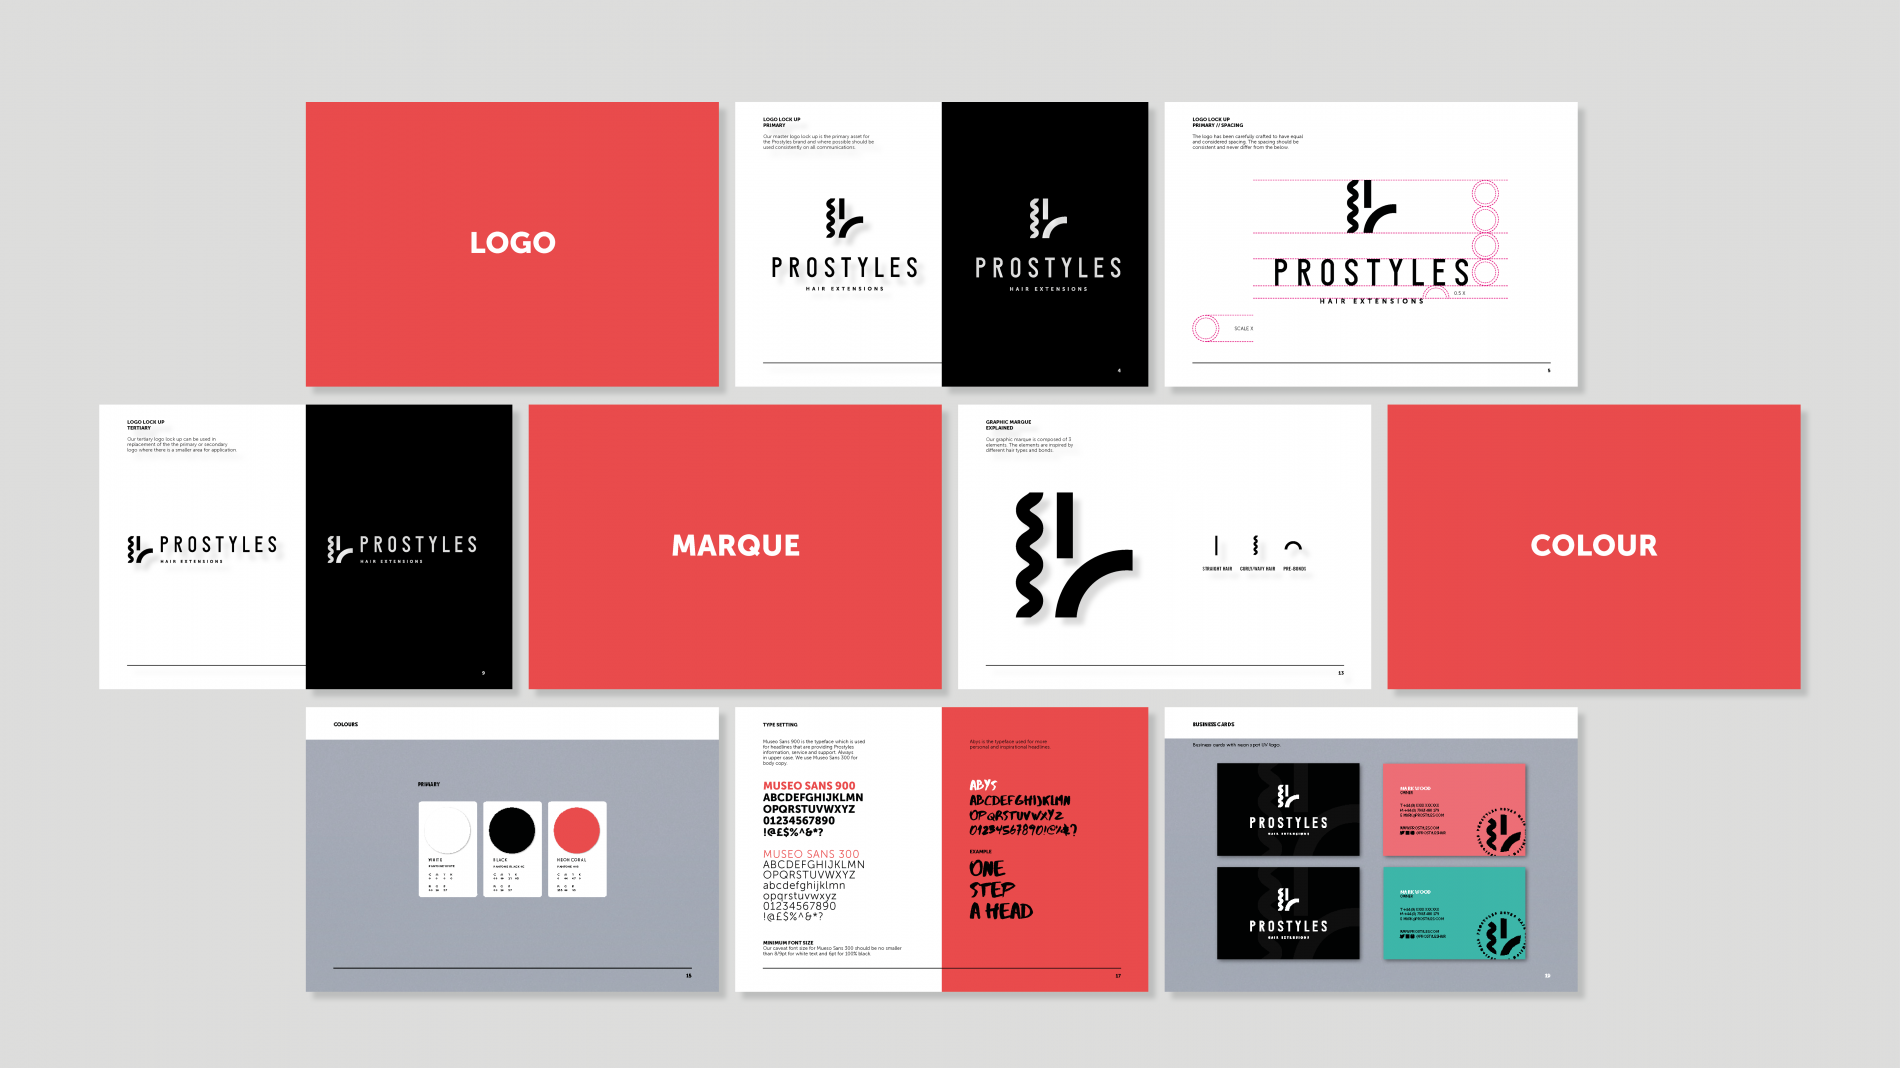 Prostyles brand guideline pages